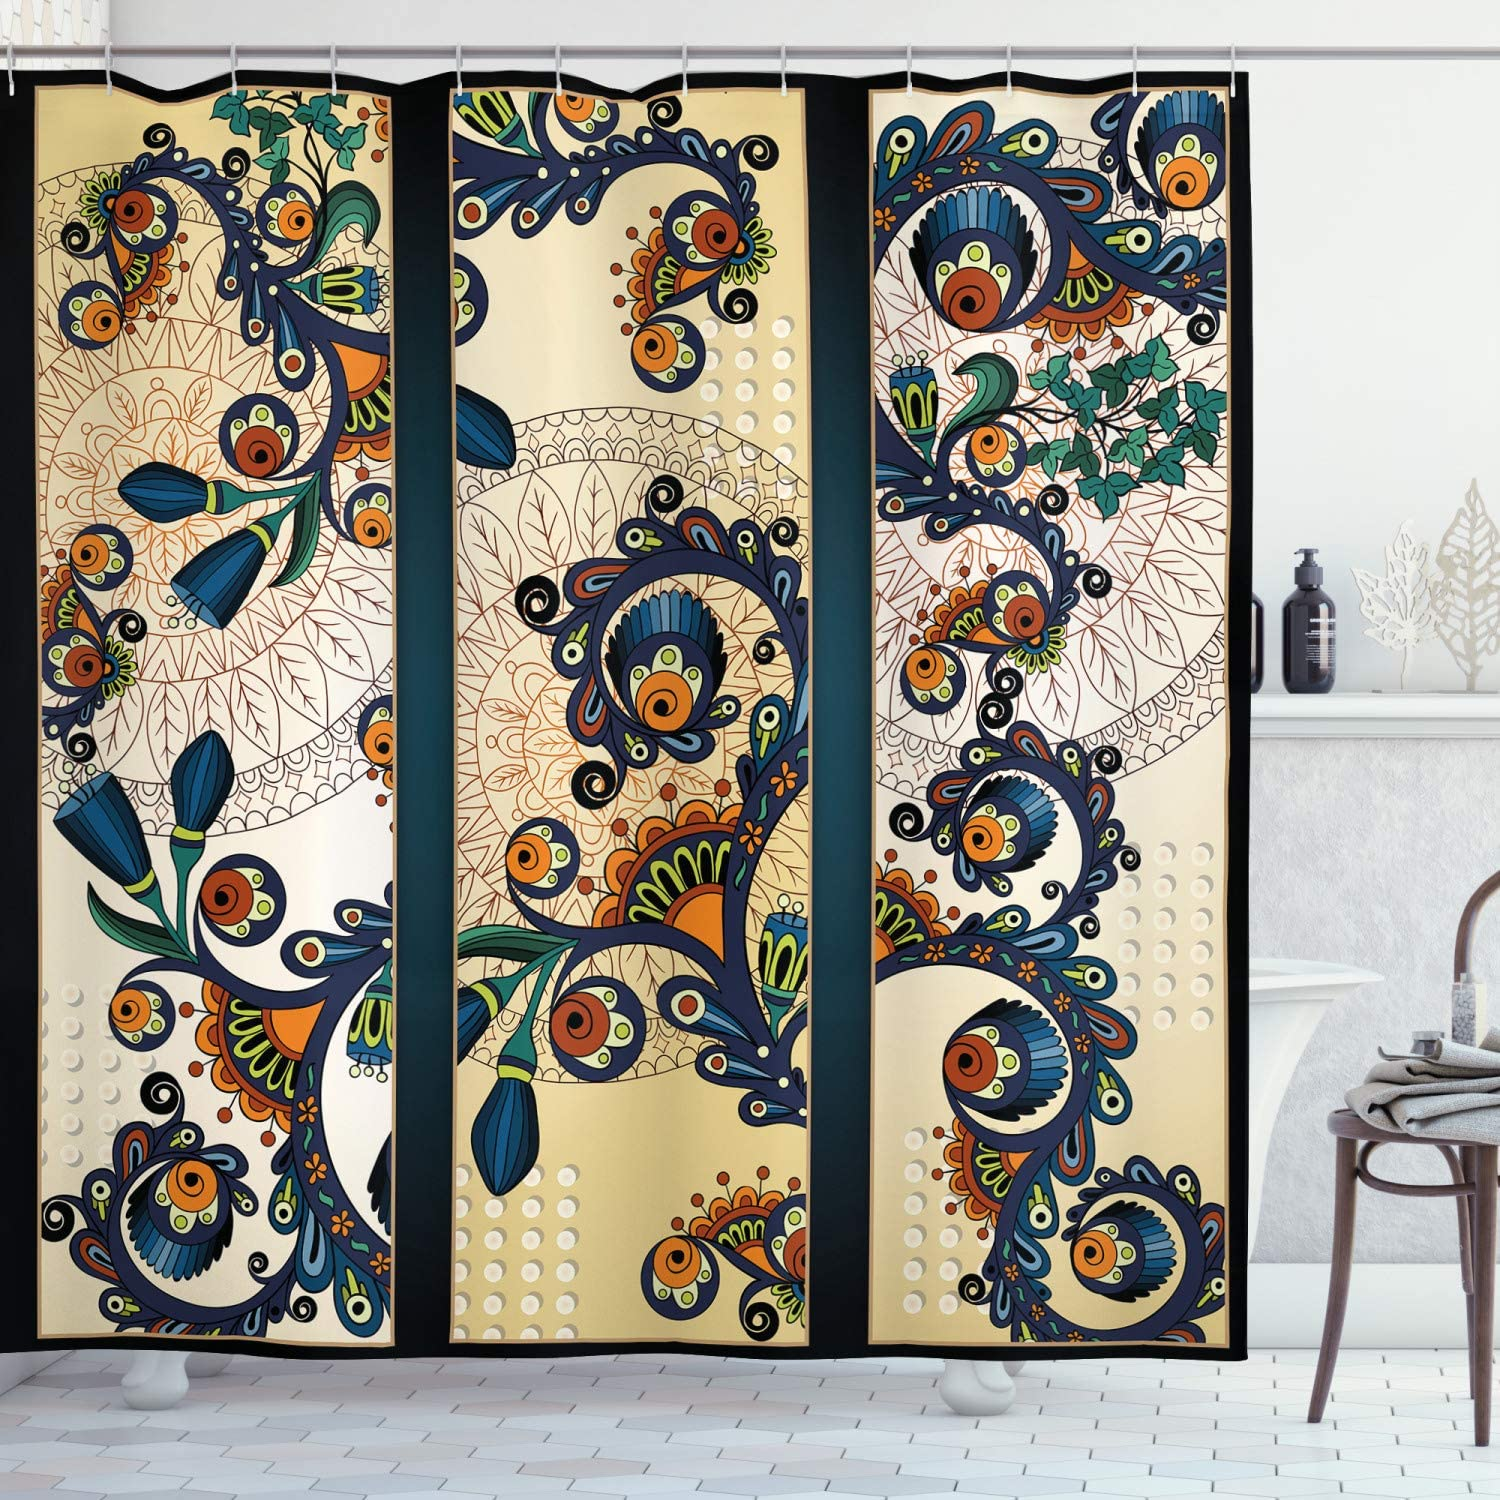 """Ambesonne Abstract Shower Curtain, Paisley Batik Floral Design Hand Drawn Ornament Artwork, Cloth Fabric Bathroom Decor Set with Hooks, 75"""" Long, Navy Blue"""